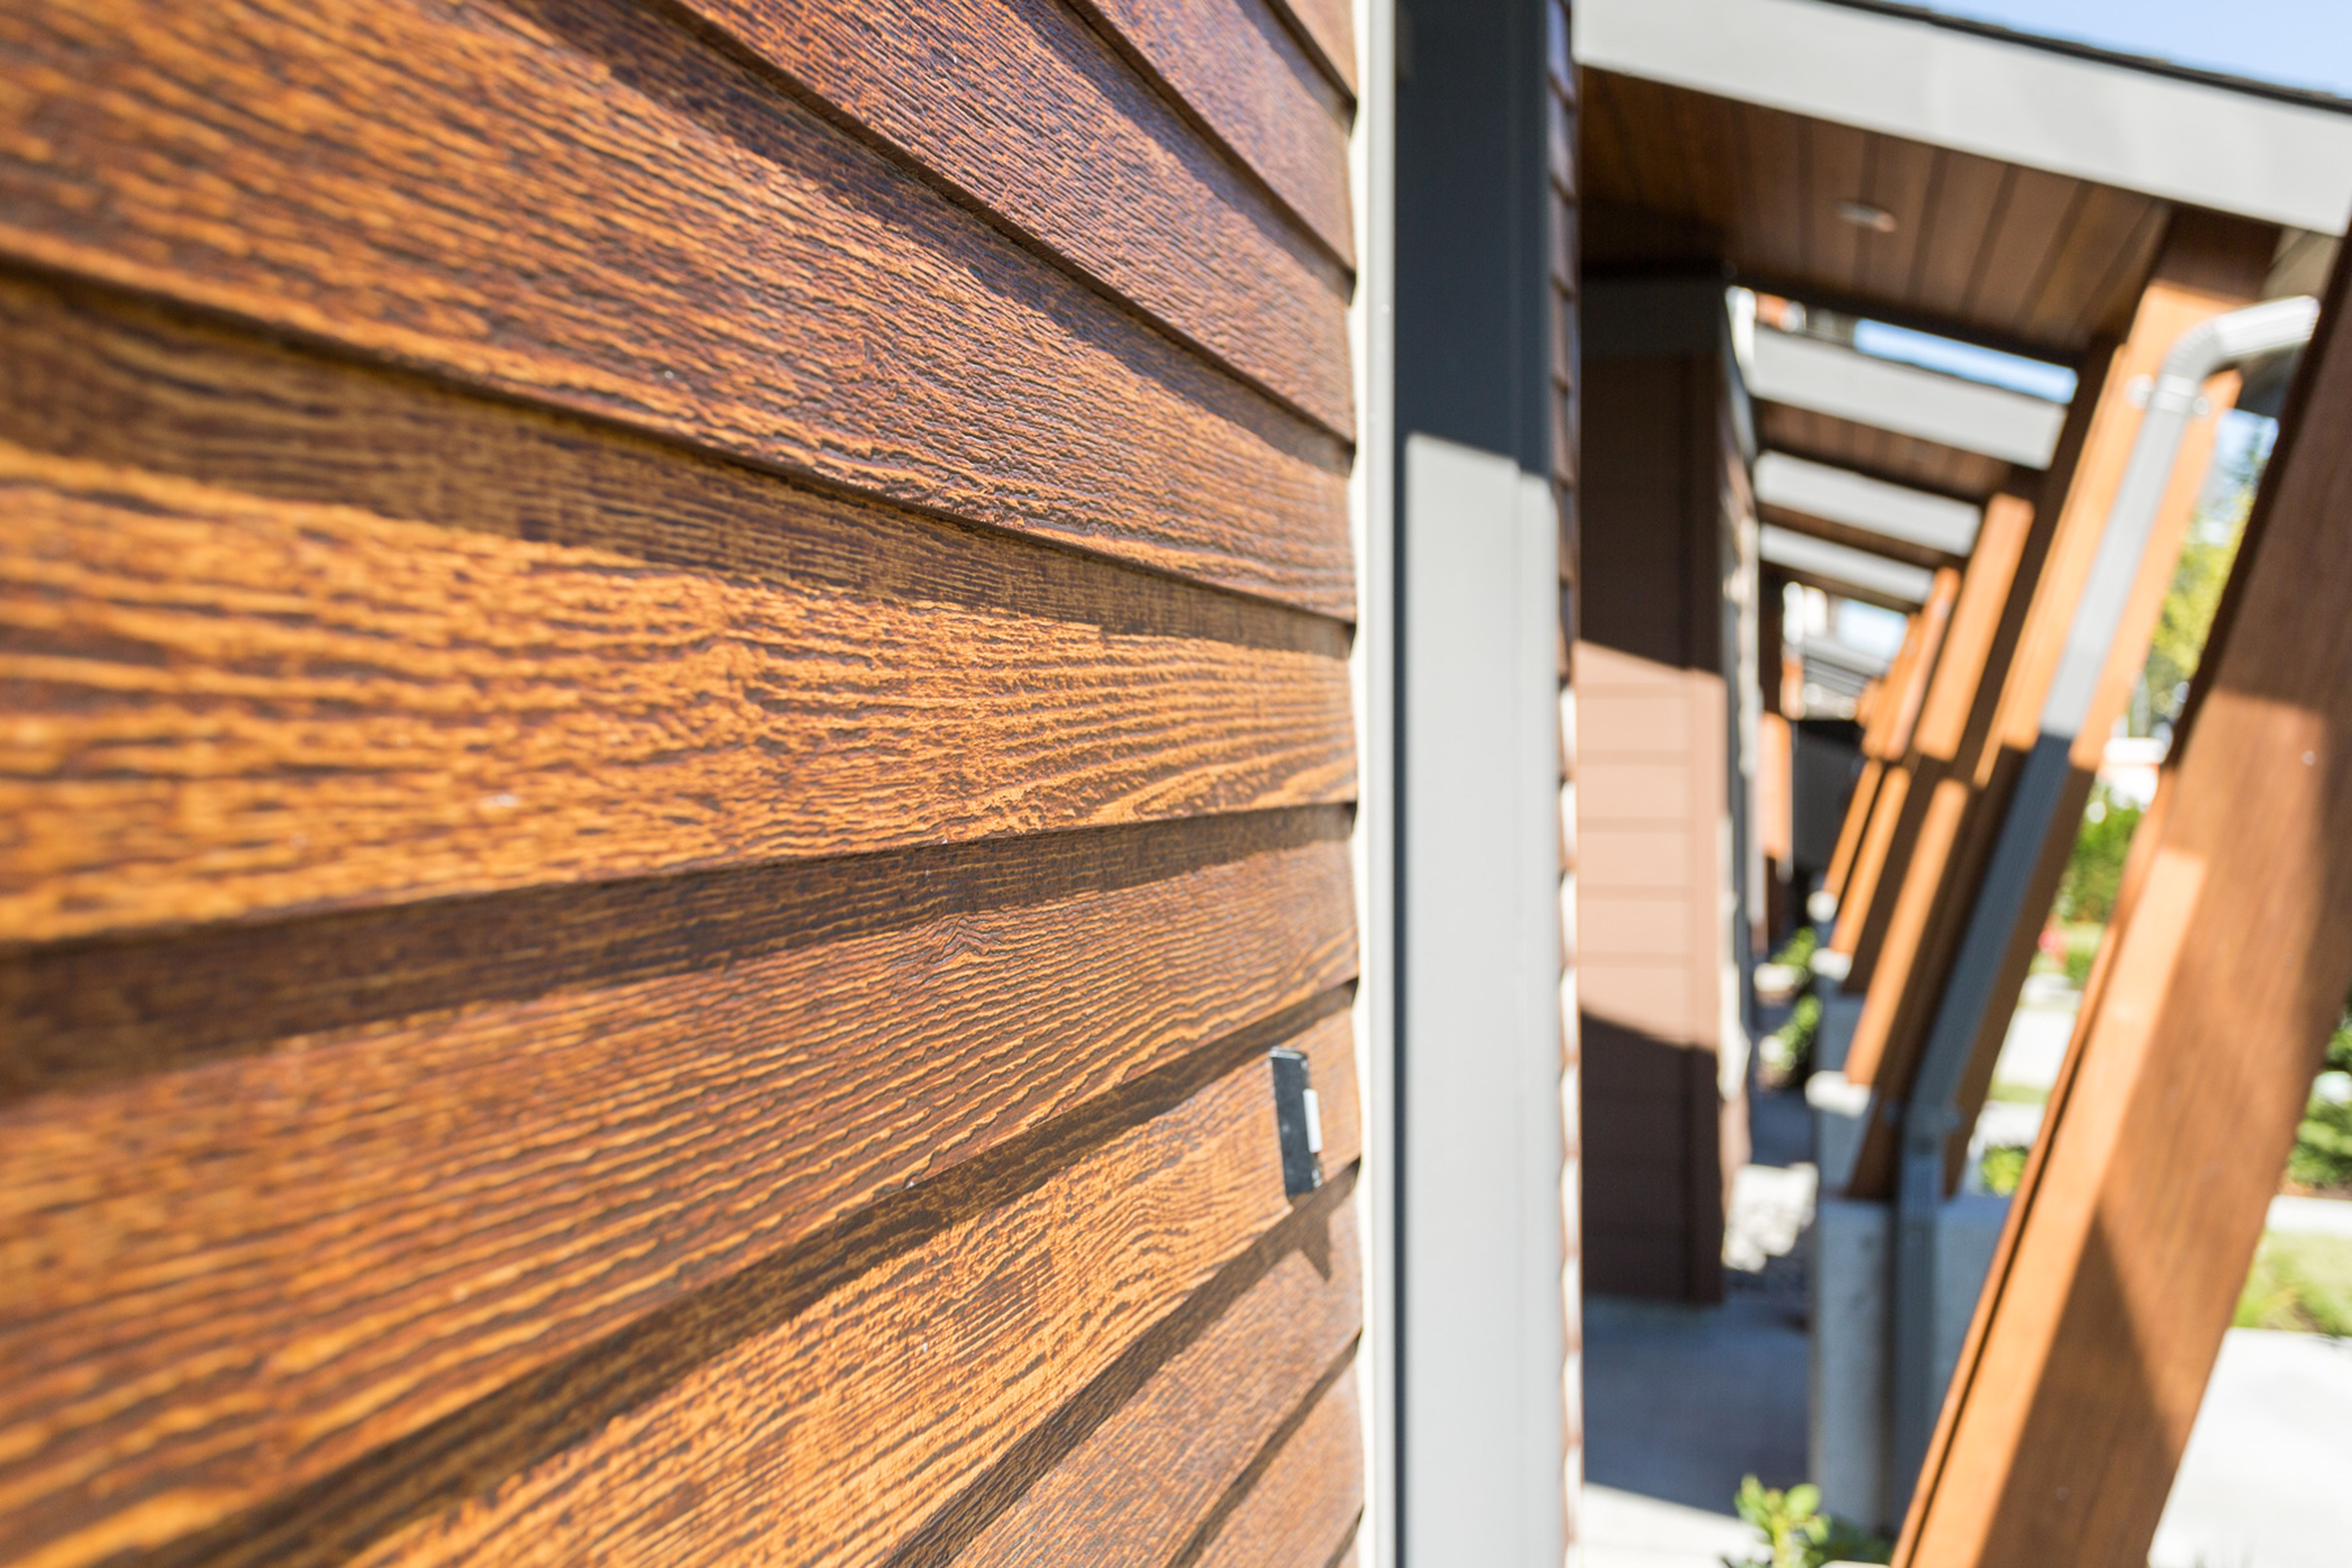 Old Cherry Fiber Cement Siding that Looks Like Wood! | Wood siding exterior,  Wood siding, House siding